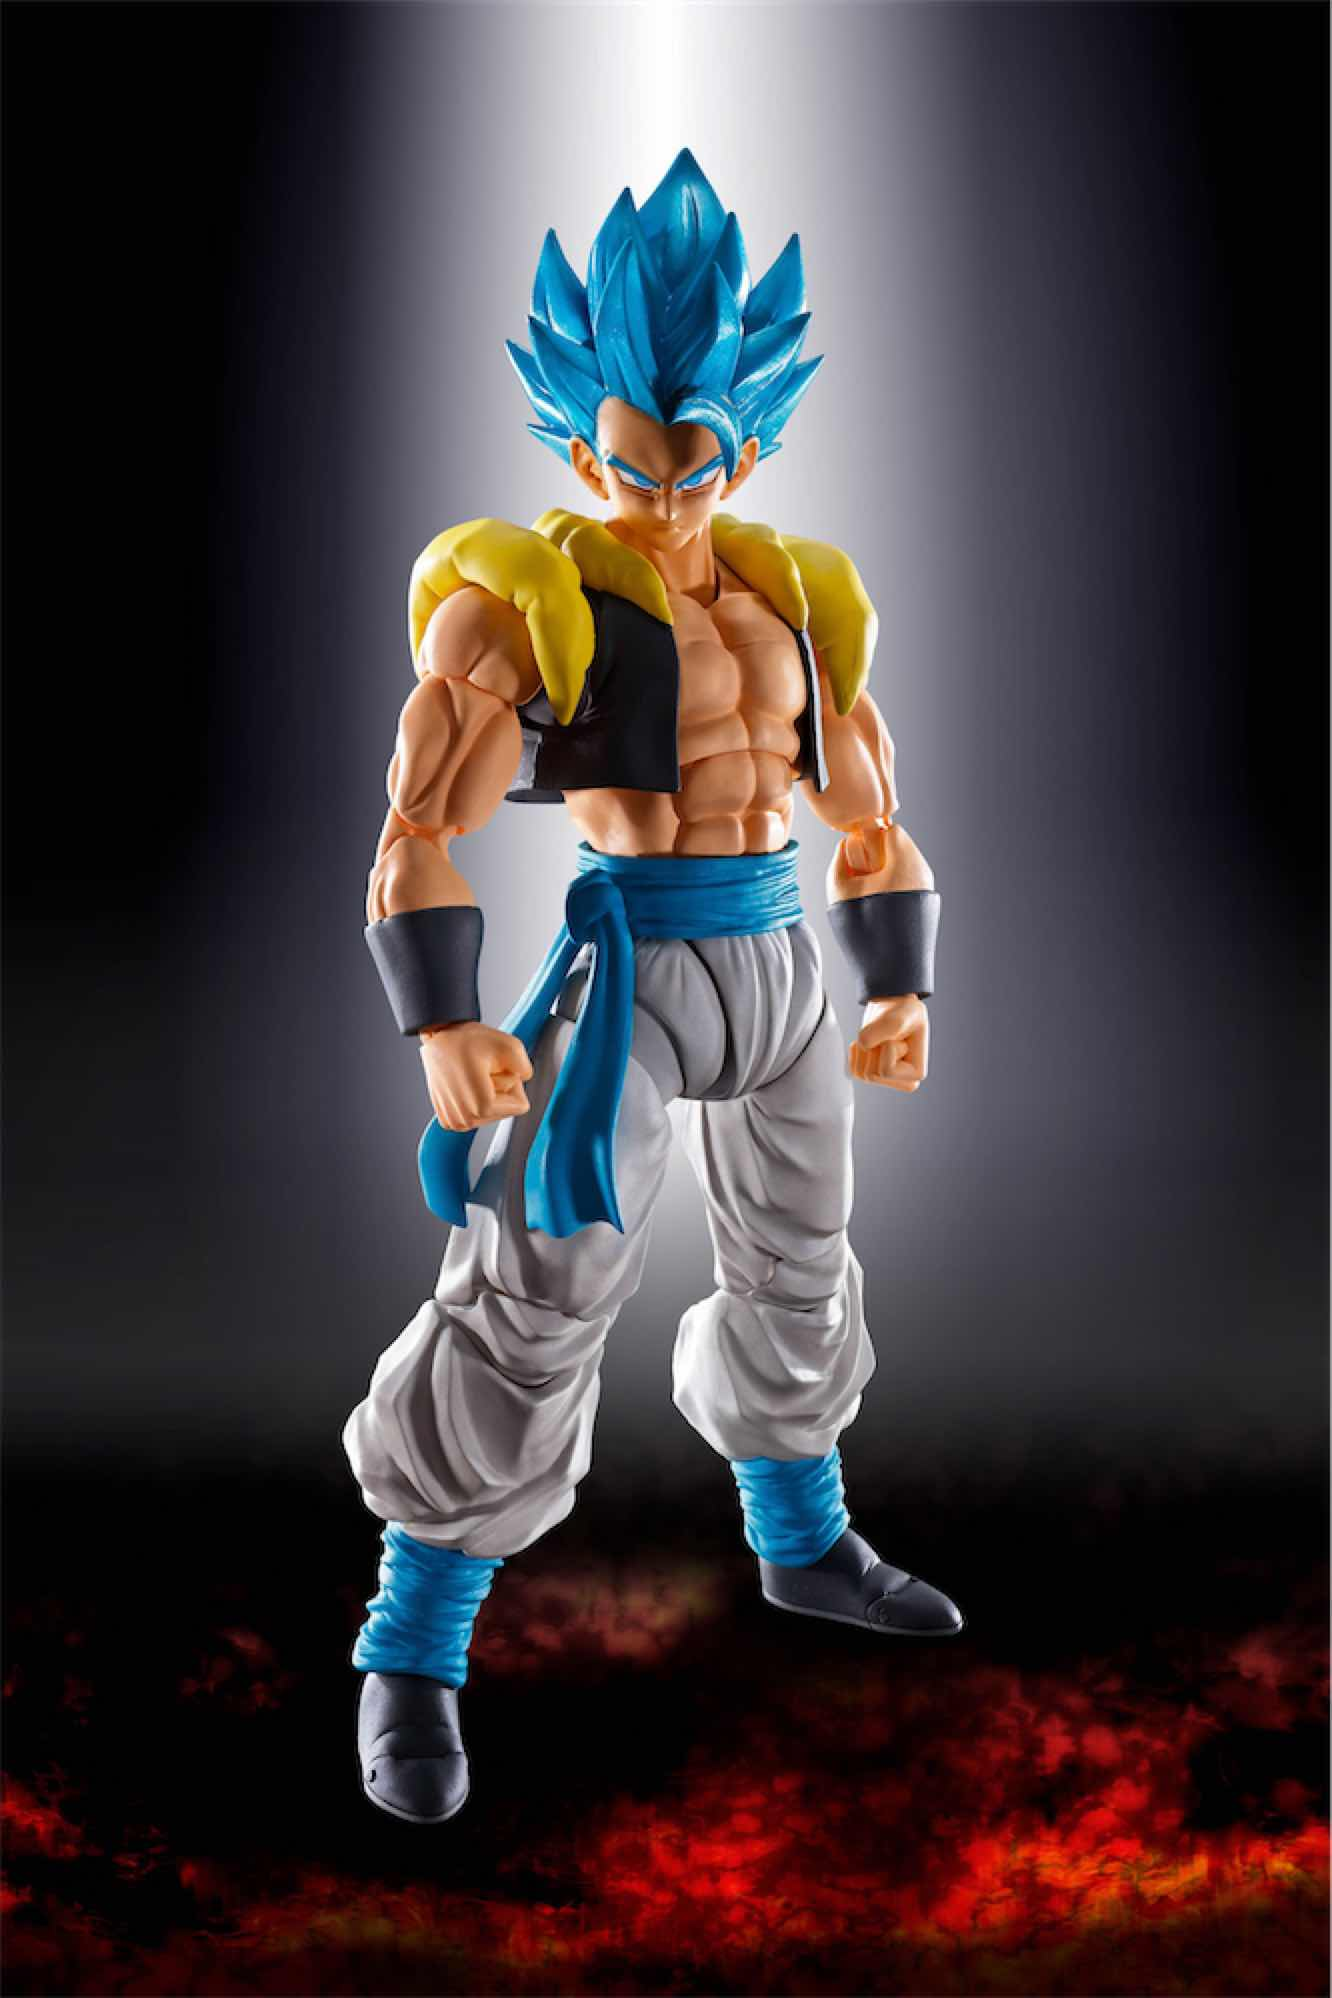 SUPER SAIYAN GOD SUPER SAIYAN GOGETA FIGURA 14 CM DRAGON BALL SUPER SH FIGUARTS